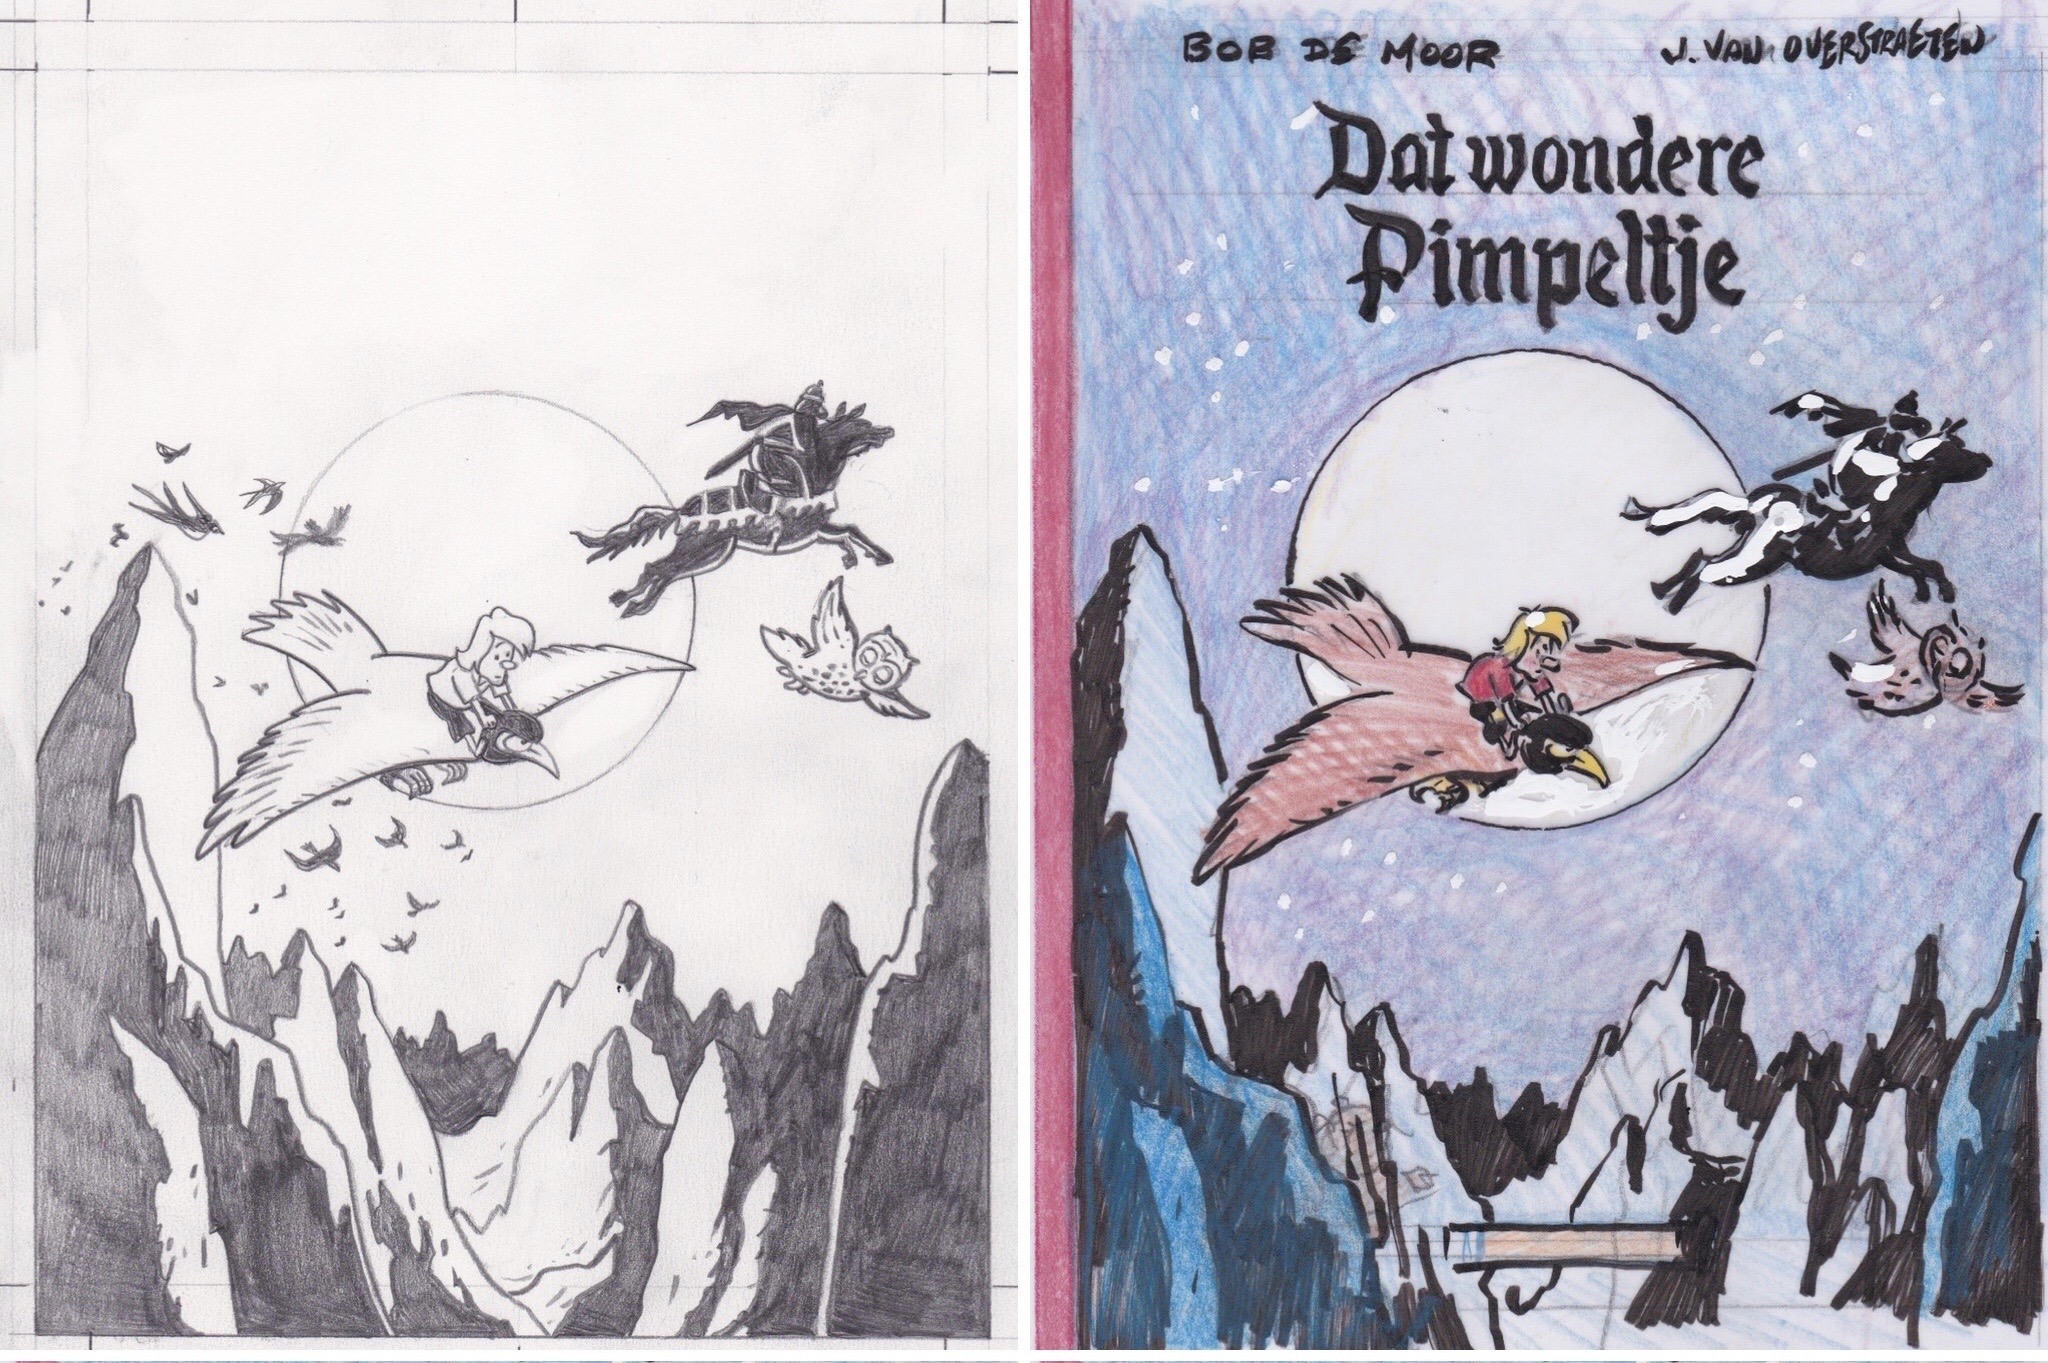 The birth of a cover for Bob De Moor's 'Dat wondere Pimpeltje' by Johan De Moor